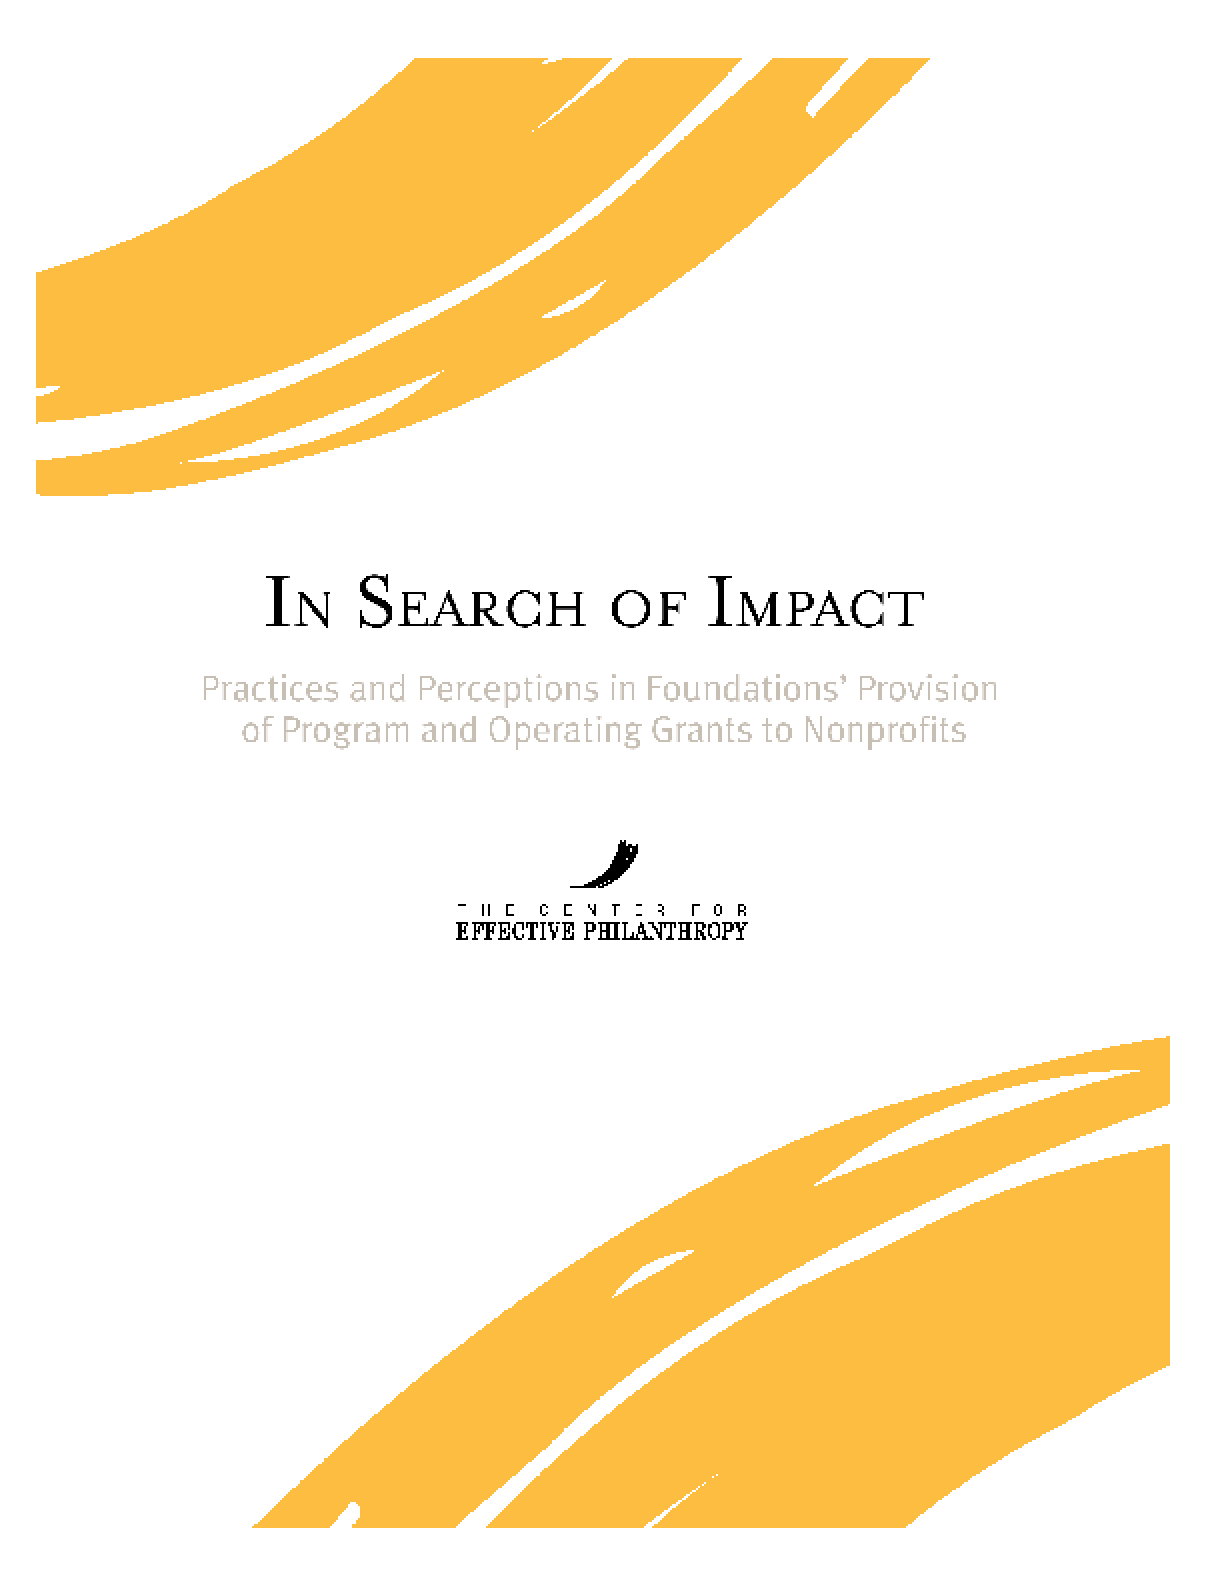 In Search of Impact: Practices and Perceptions in Foundations' Provision of Program and Operating Grants to Nonprofits